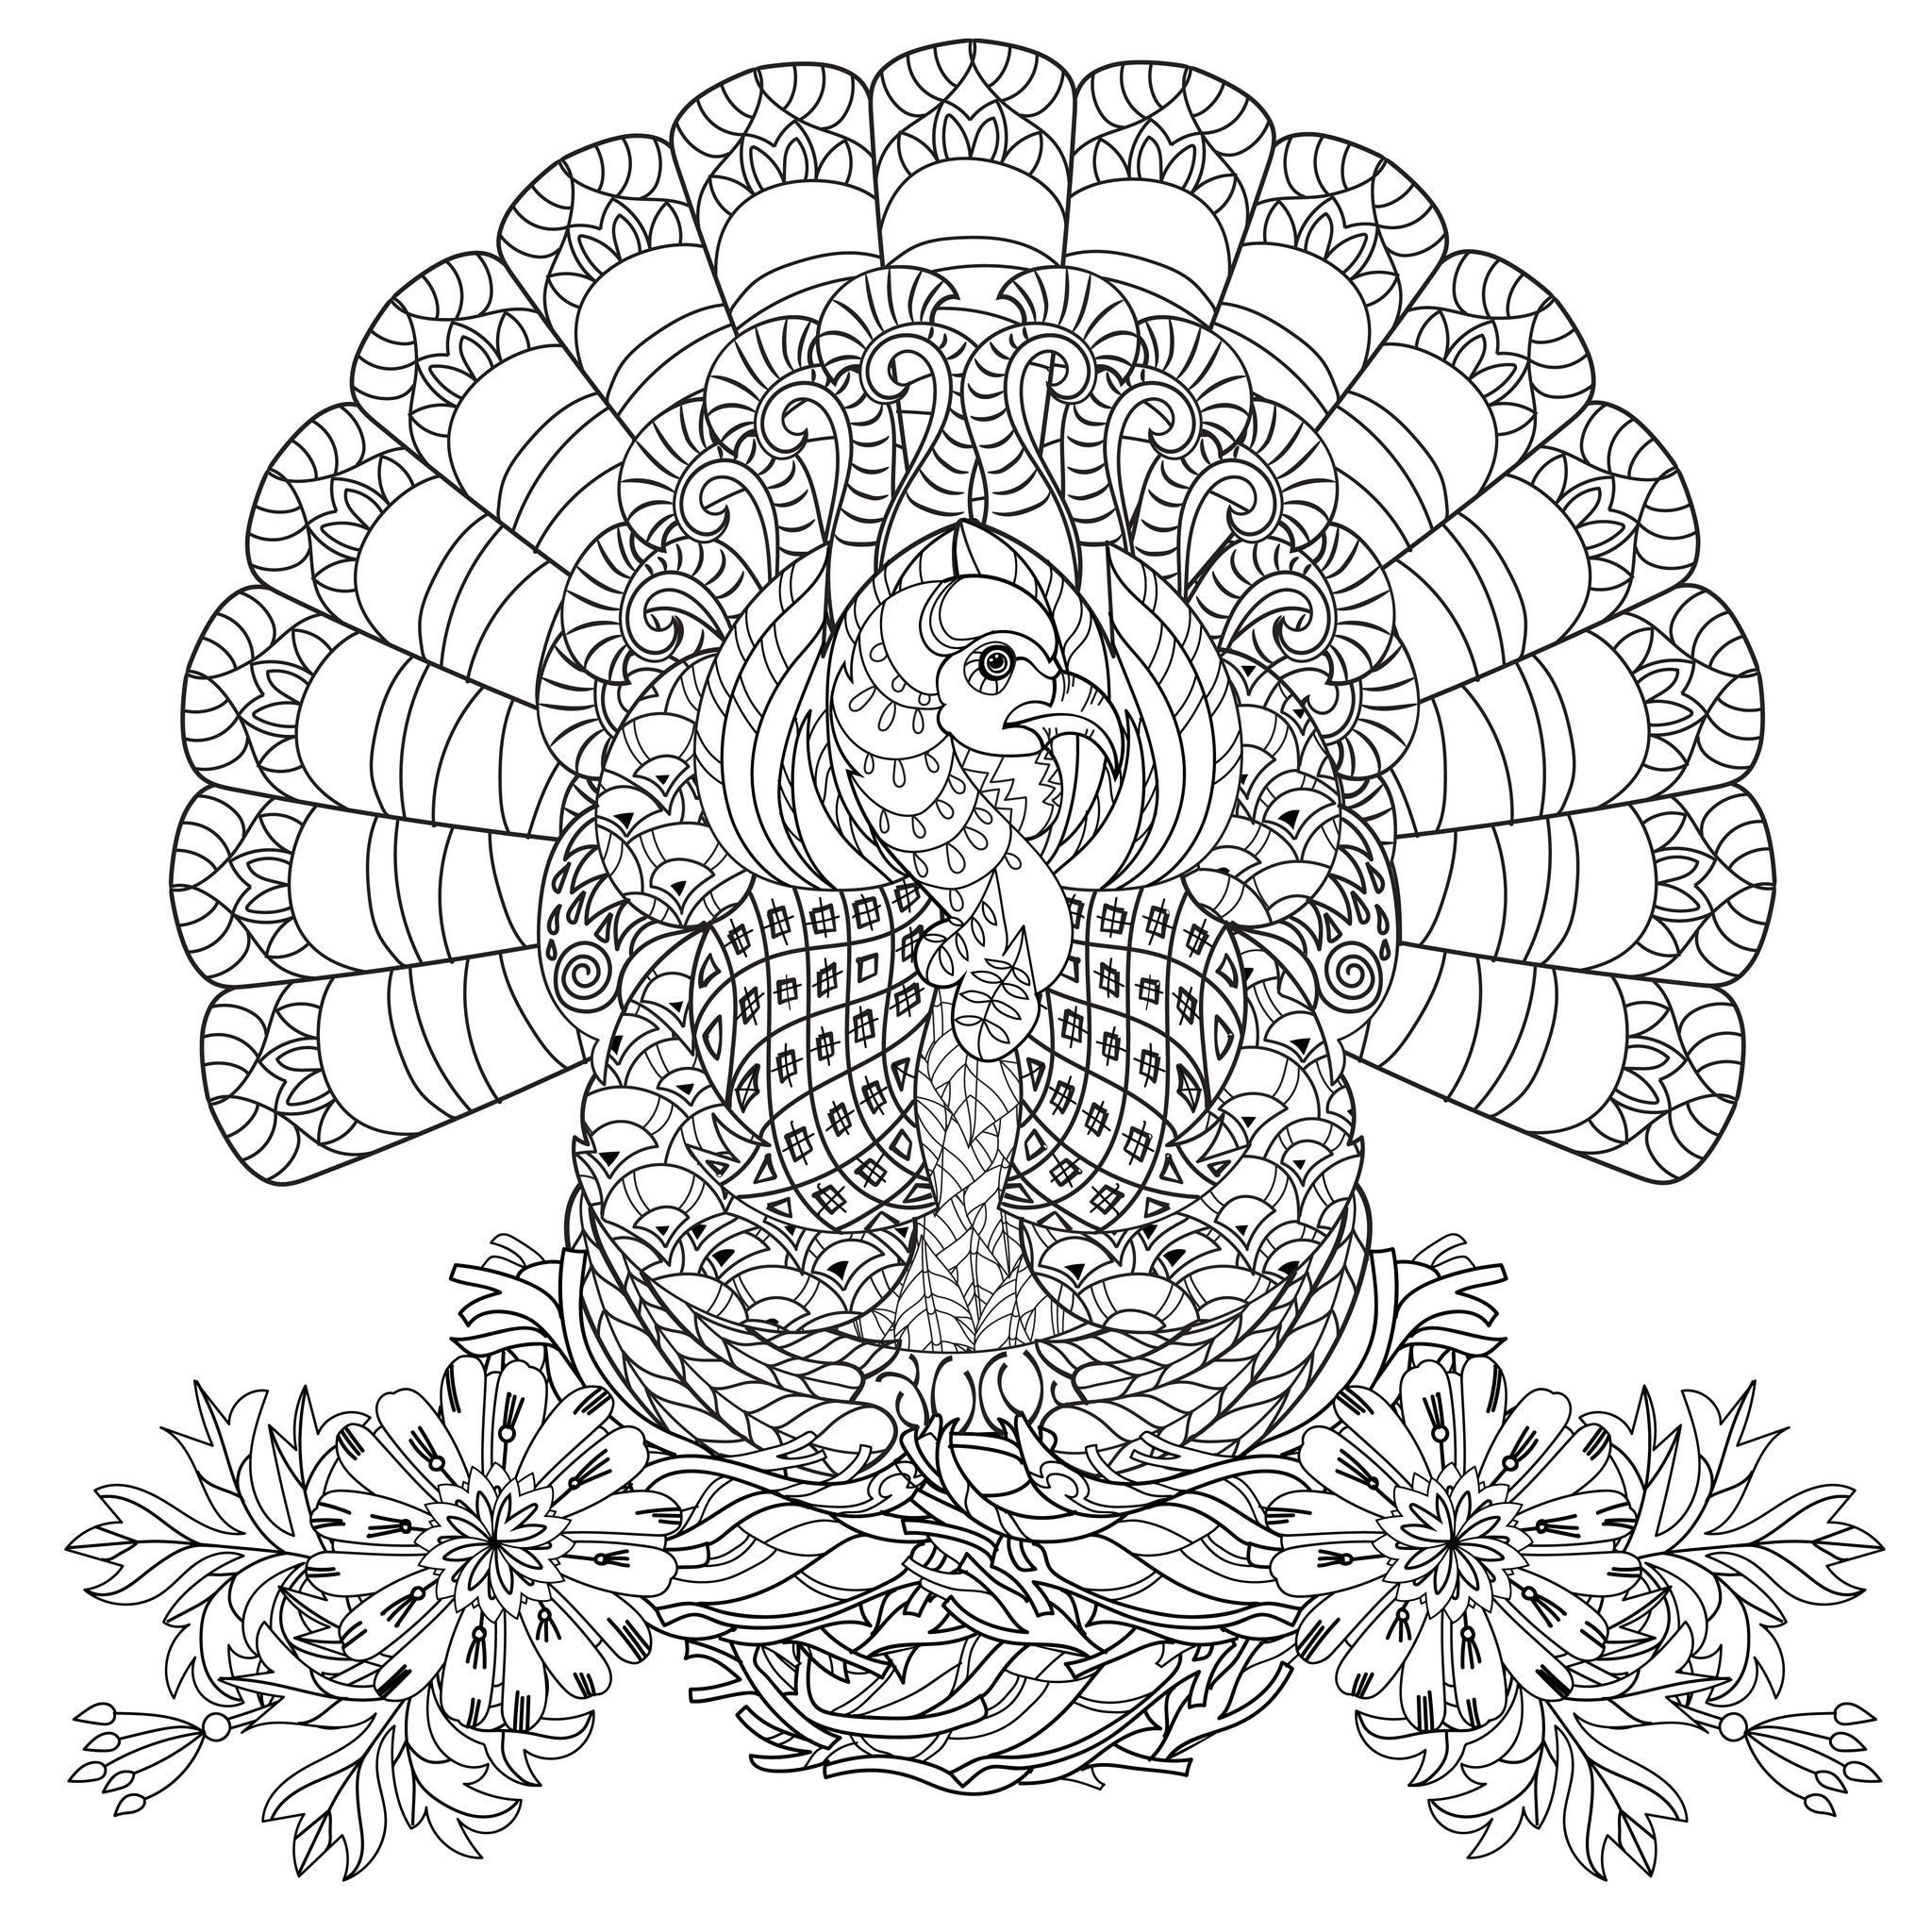 Thanksgiving coloring pages for adults to download and Coloring book for adults free download